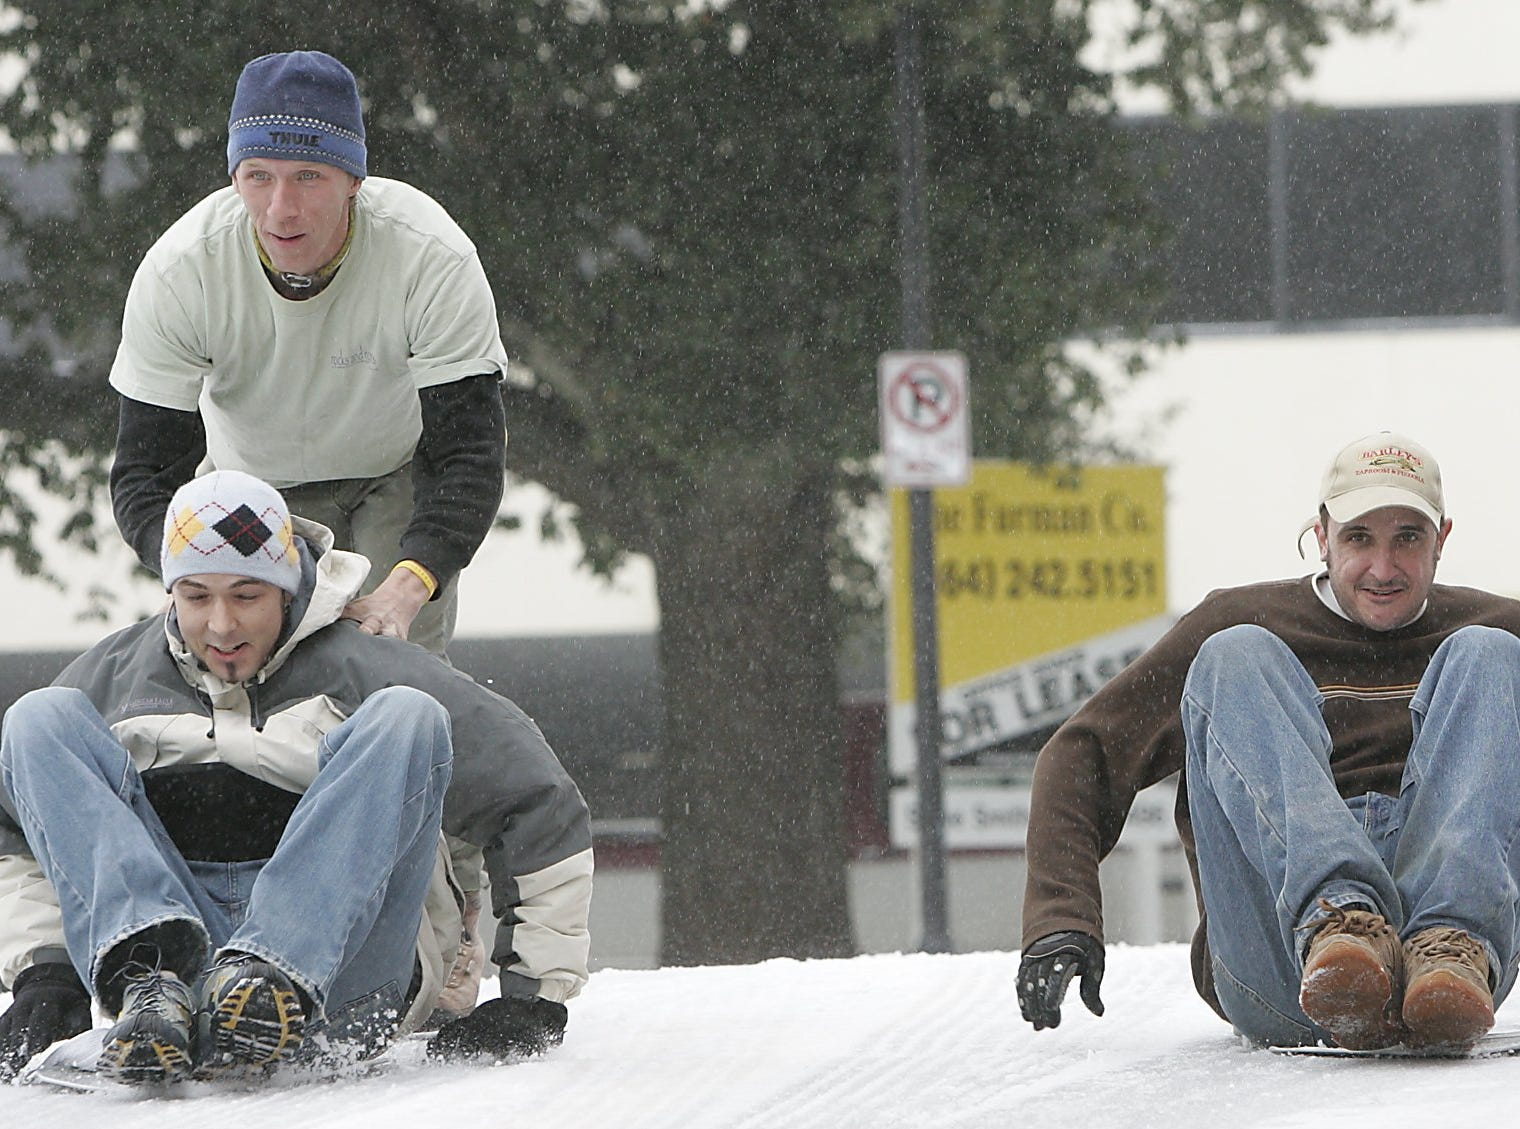 Barley's Taproom and Pizzeria employees, Zack Trotter, right, and Drew Moren take a break from work to slide down Laurens Street on pizza pans with Moren getting a little push from Brian Kettler, Saturday, January 29, 2005.